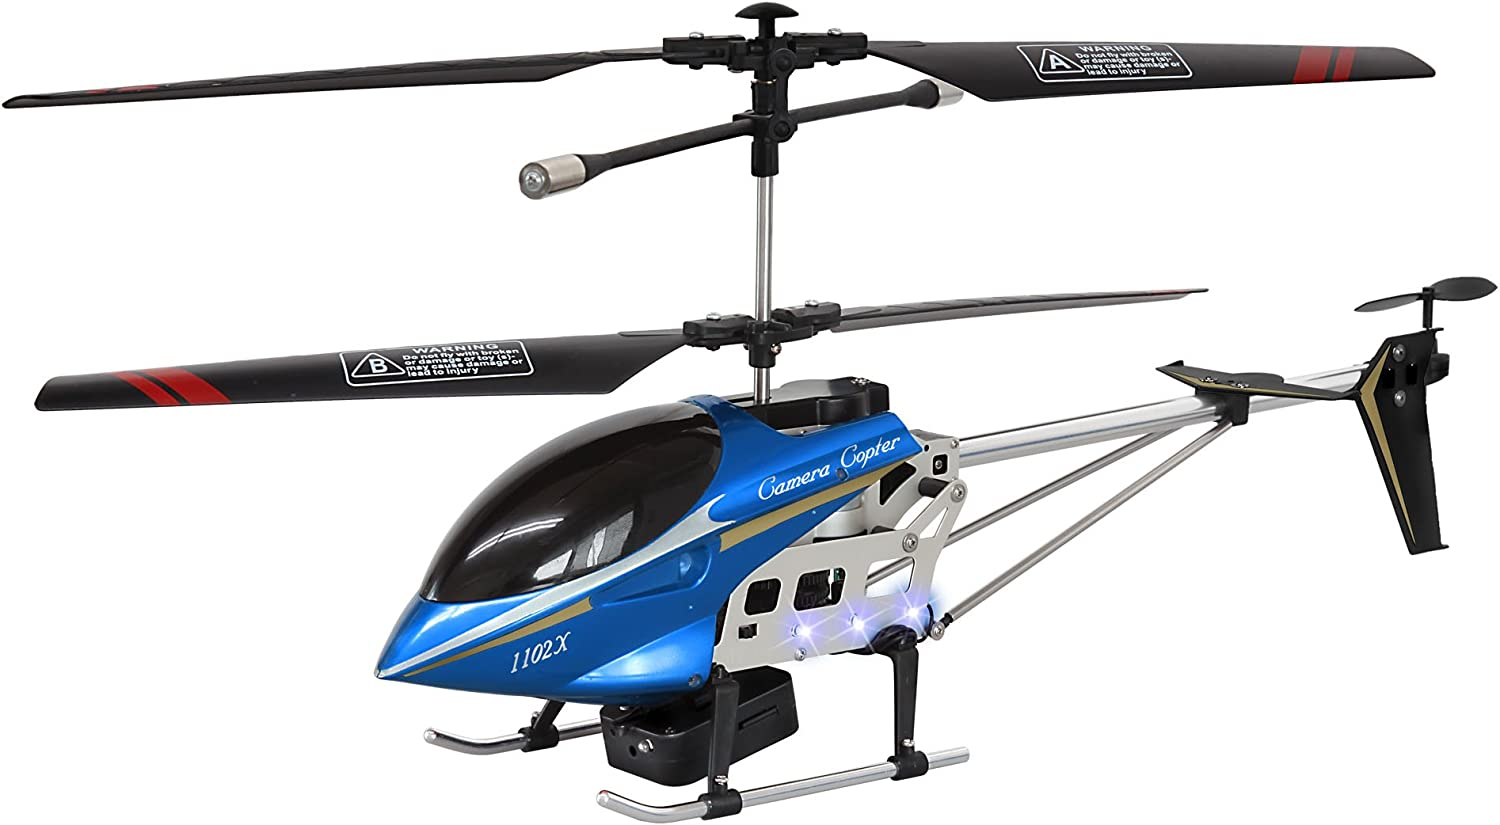 Camera Copter (Blau) - RC Helicopter